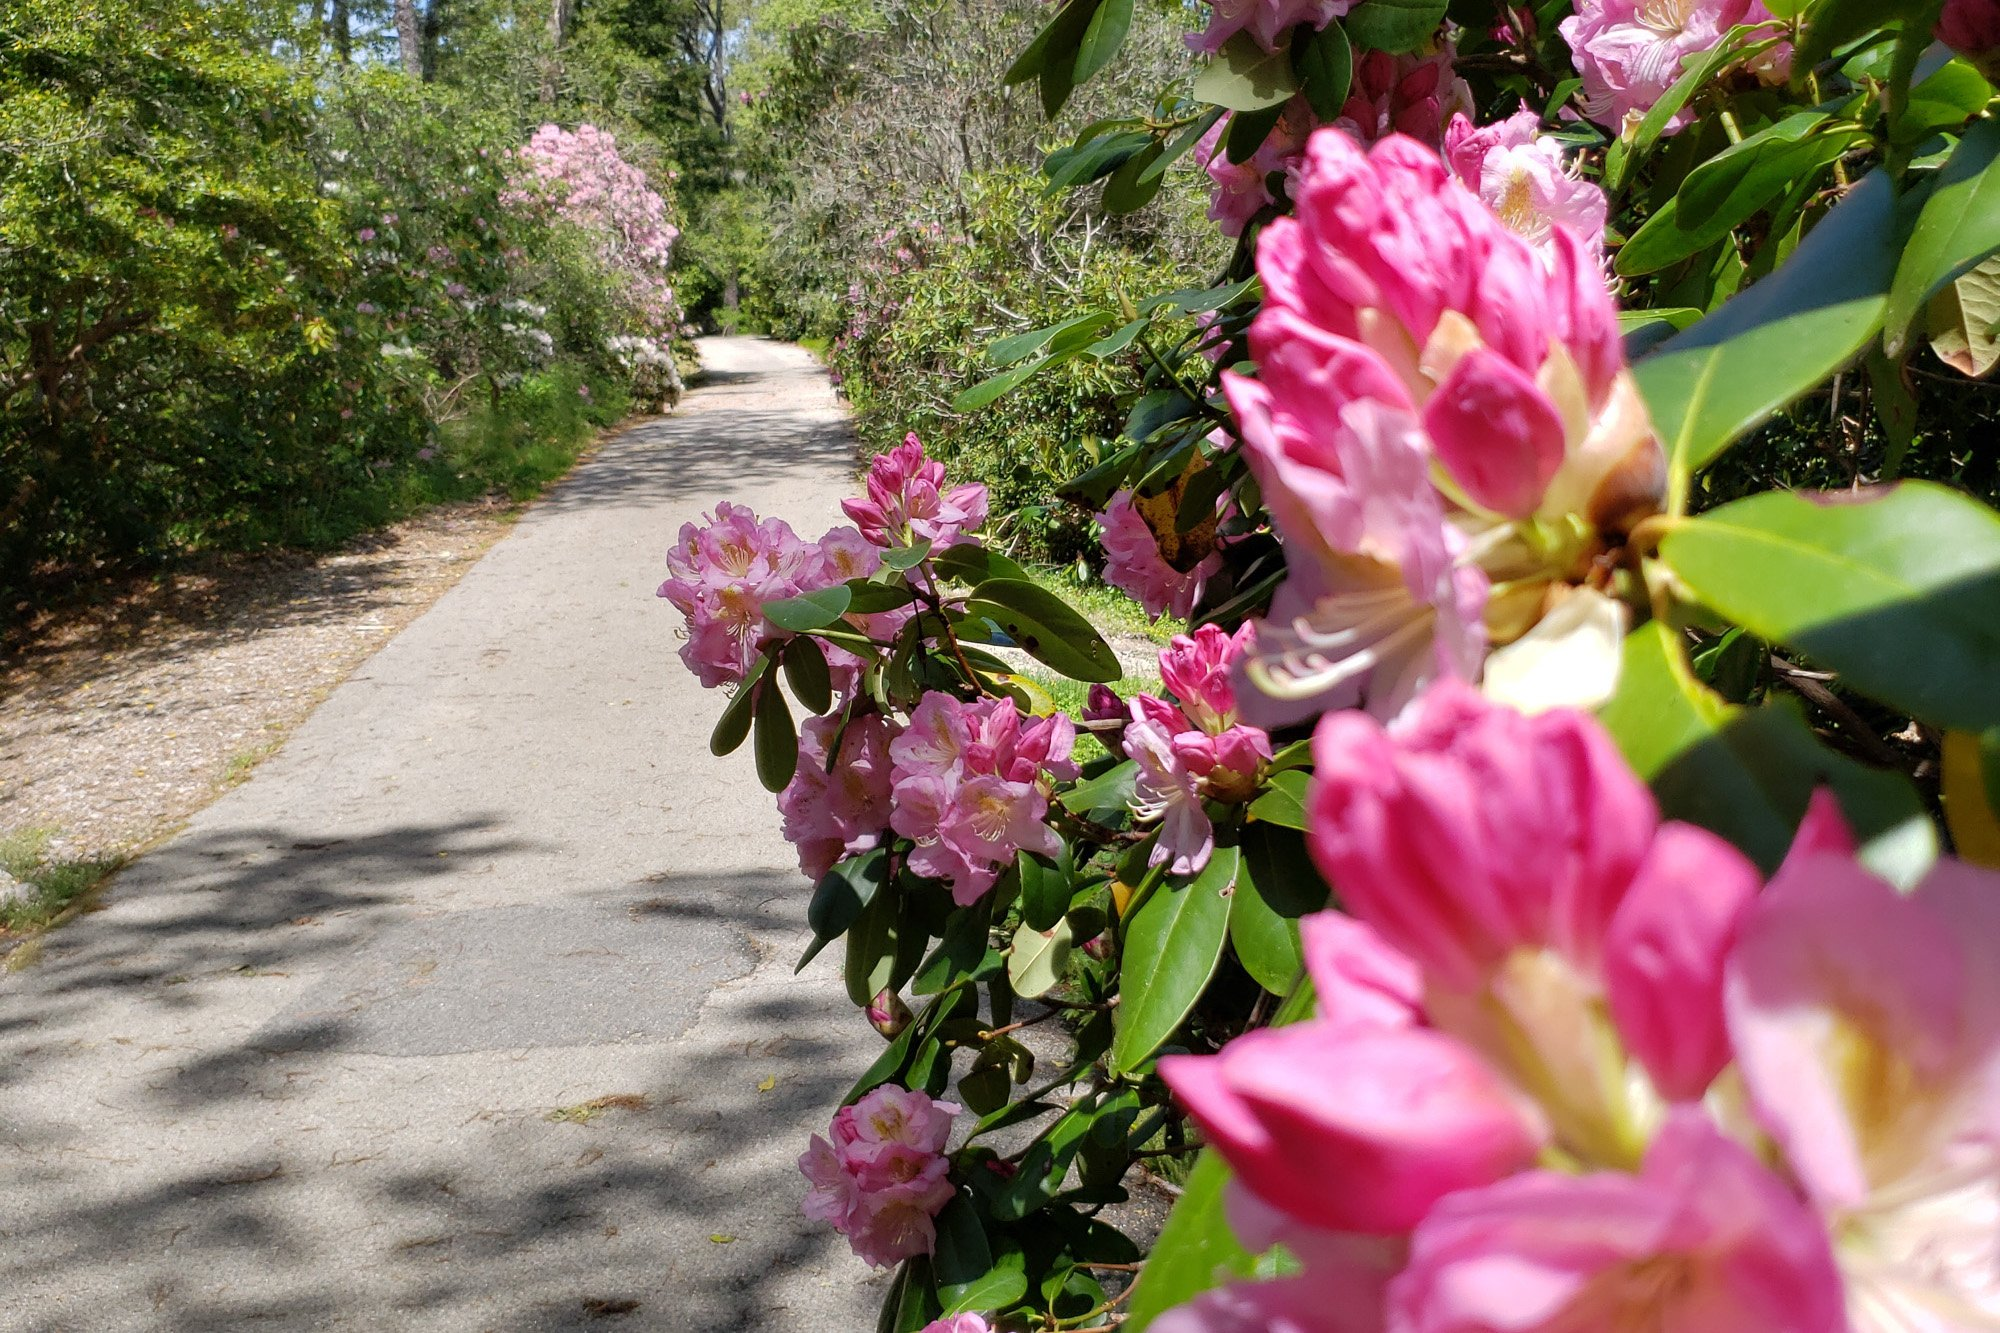 Rhododendron on path